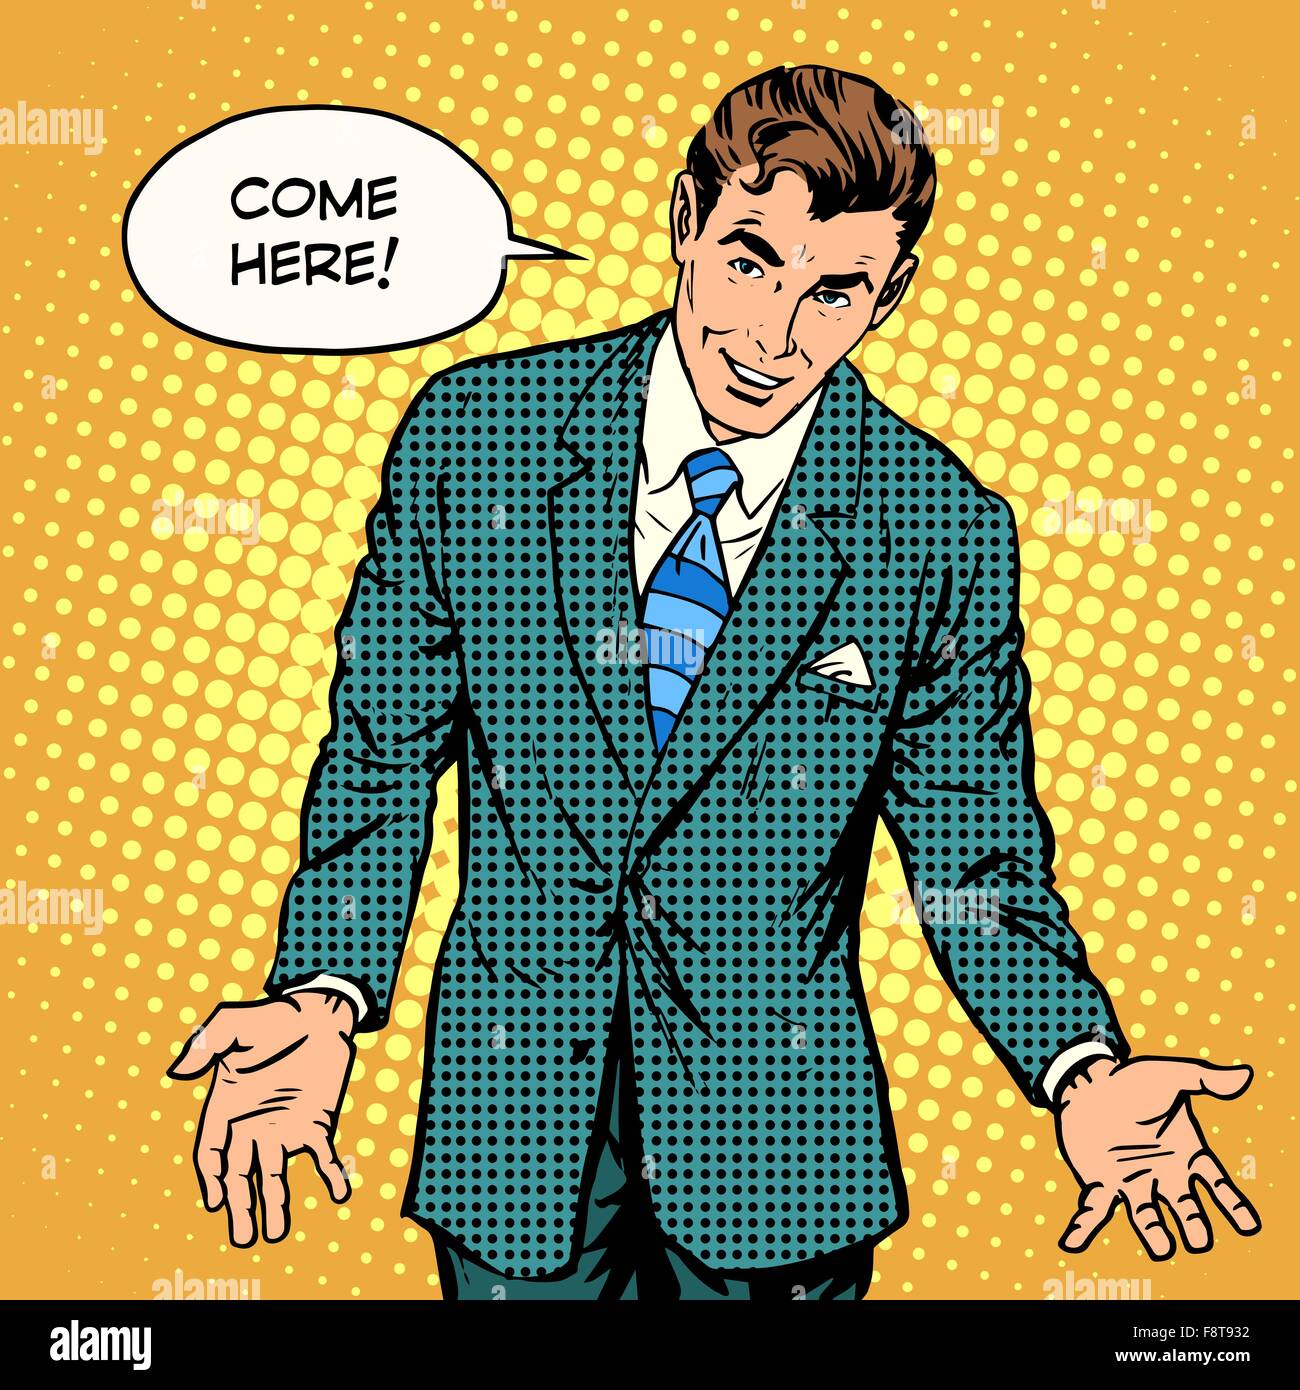 come here the man says - Stock Vector